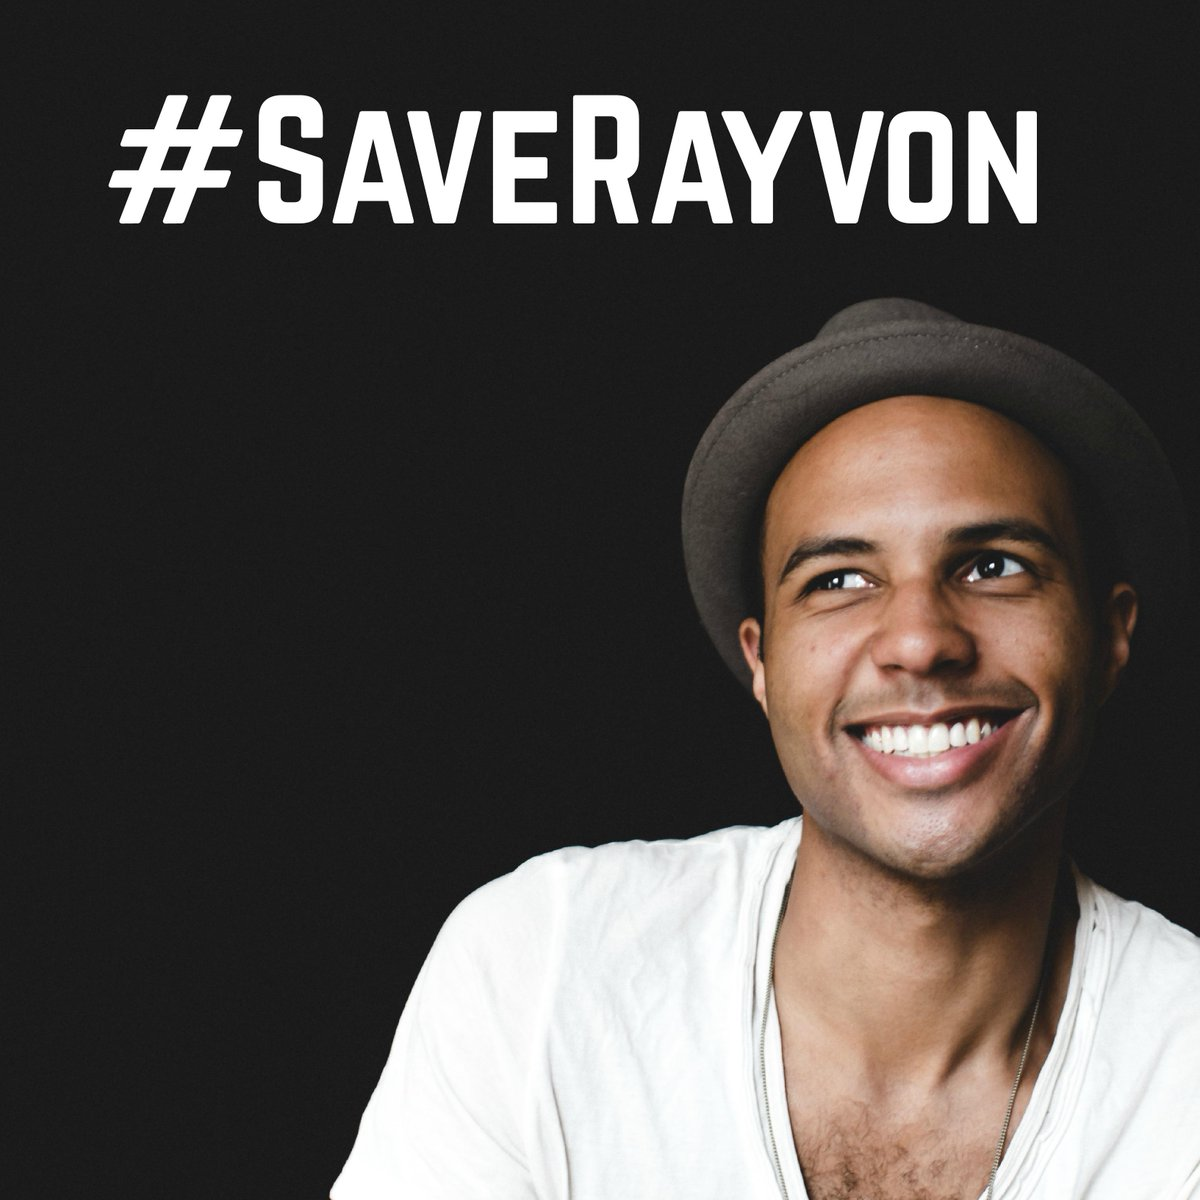 It's that time again! Retweet & tweet #SaveRayvon to get me to the Top 6! Thank you all so much! http://t.co/R9sov10zaP